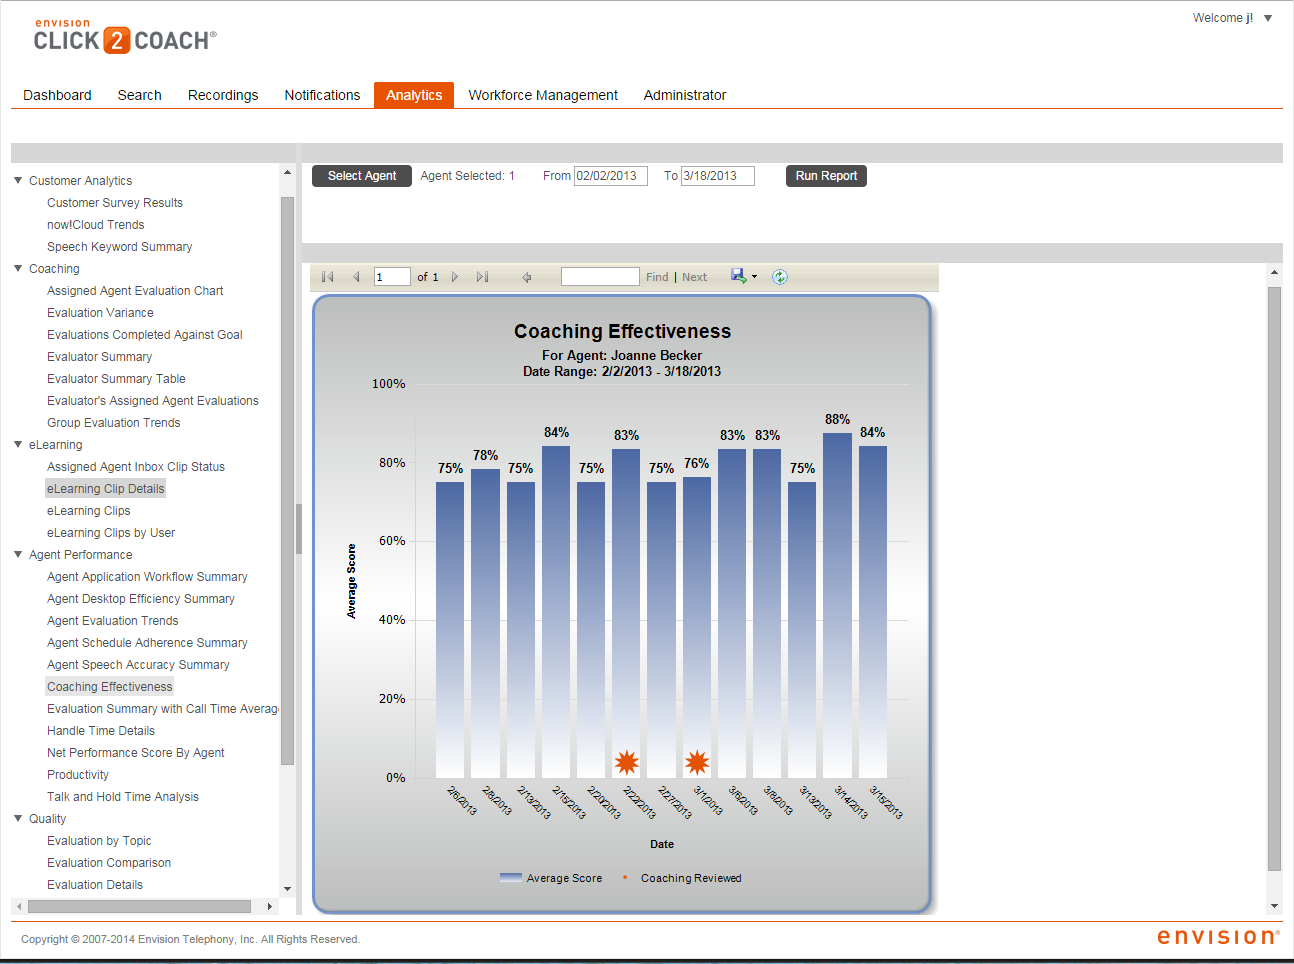 Click2Coach analytics page